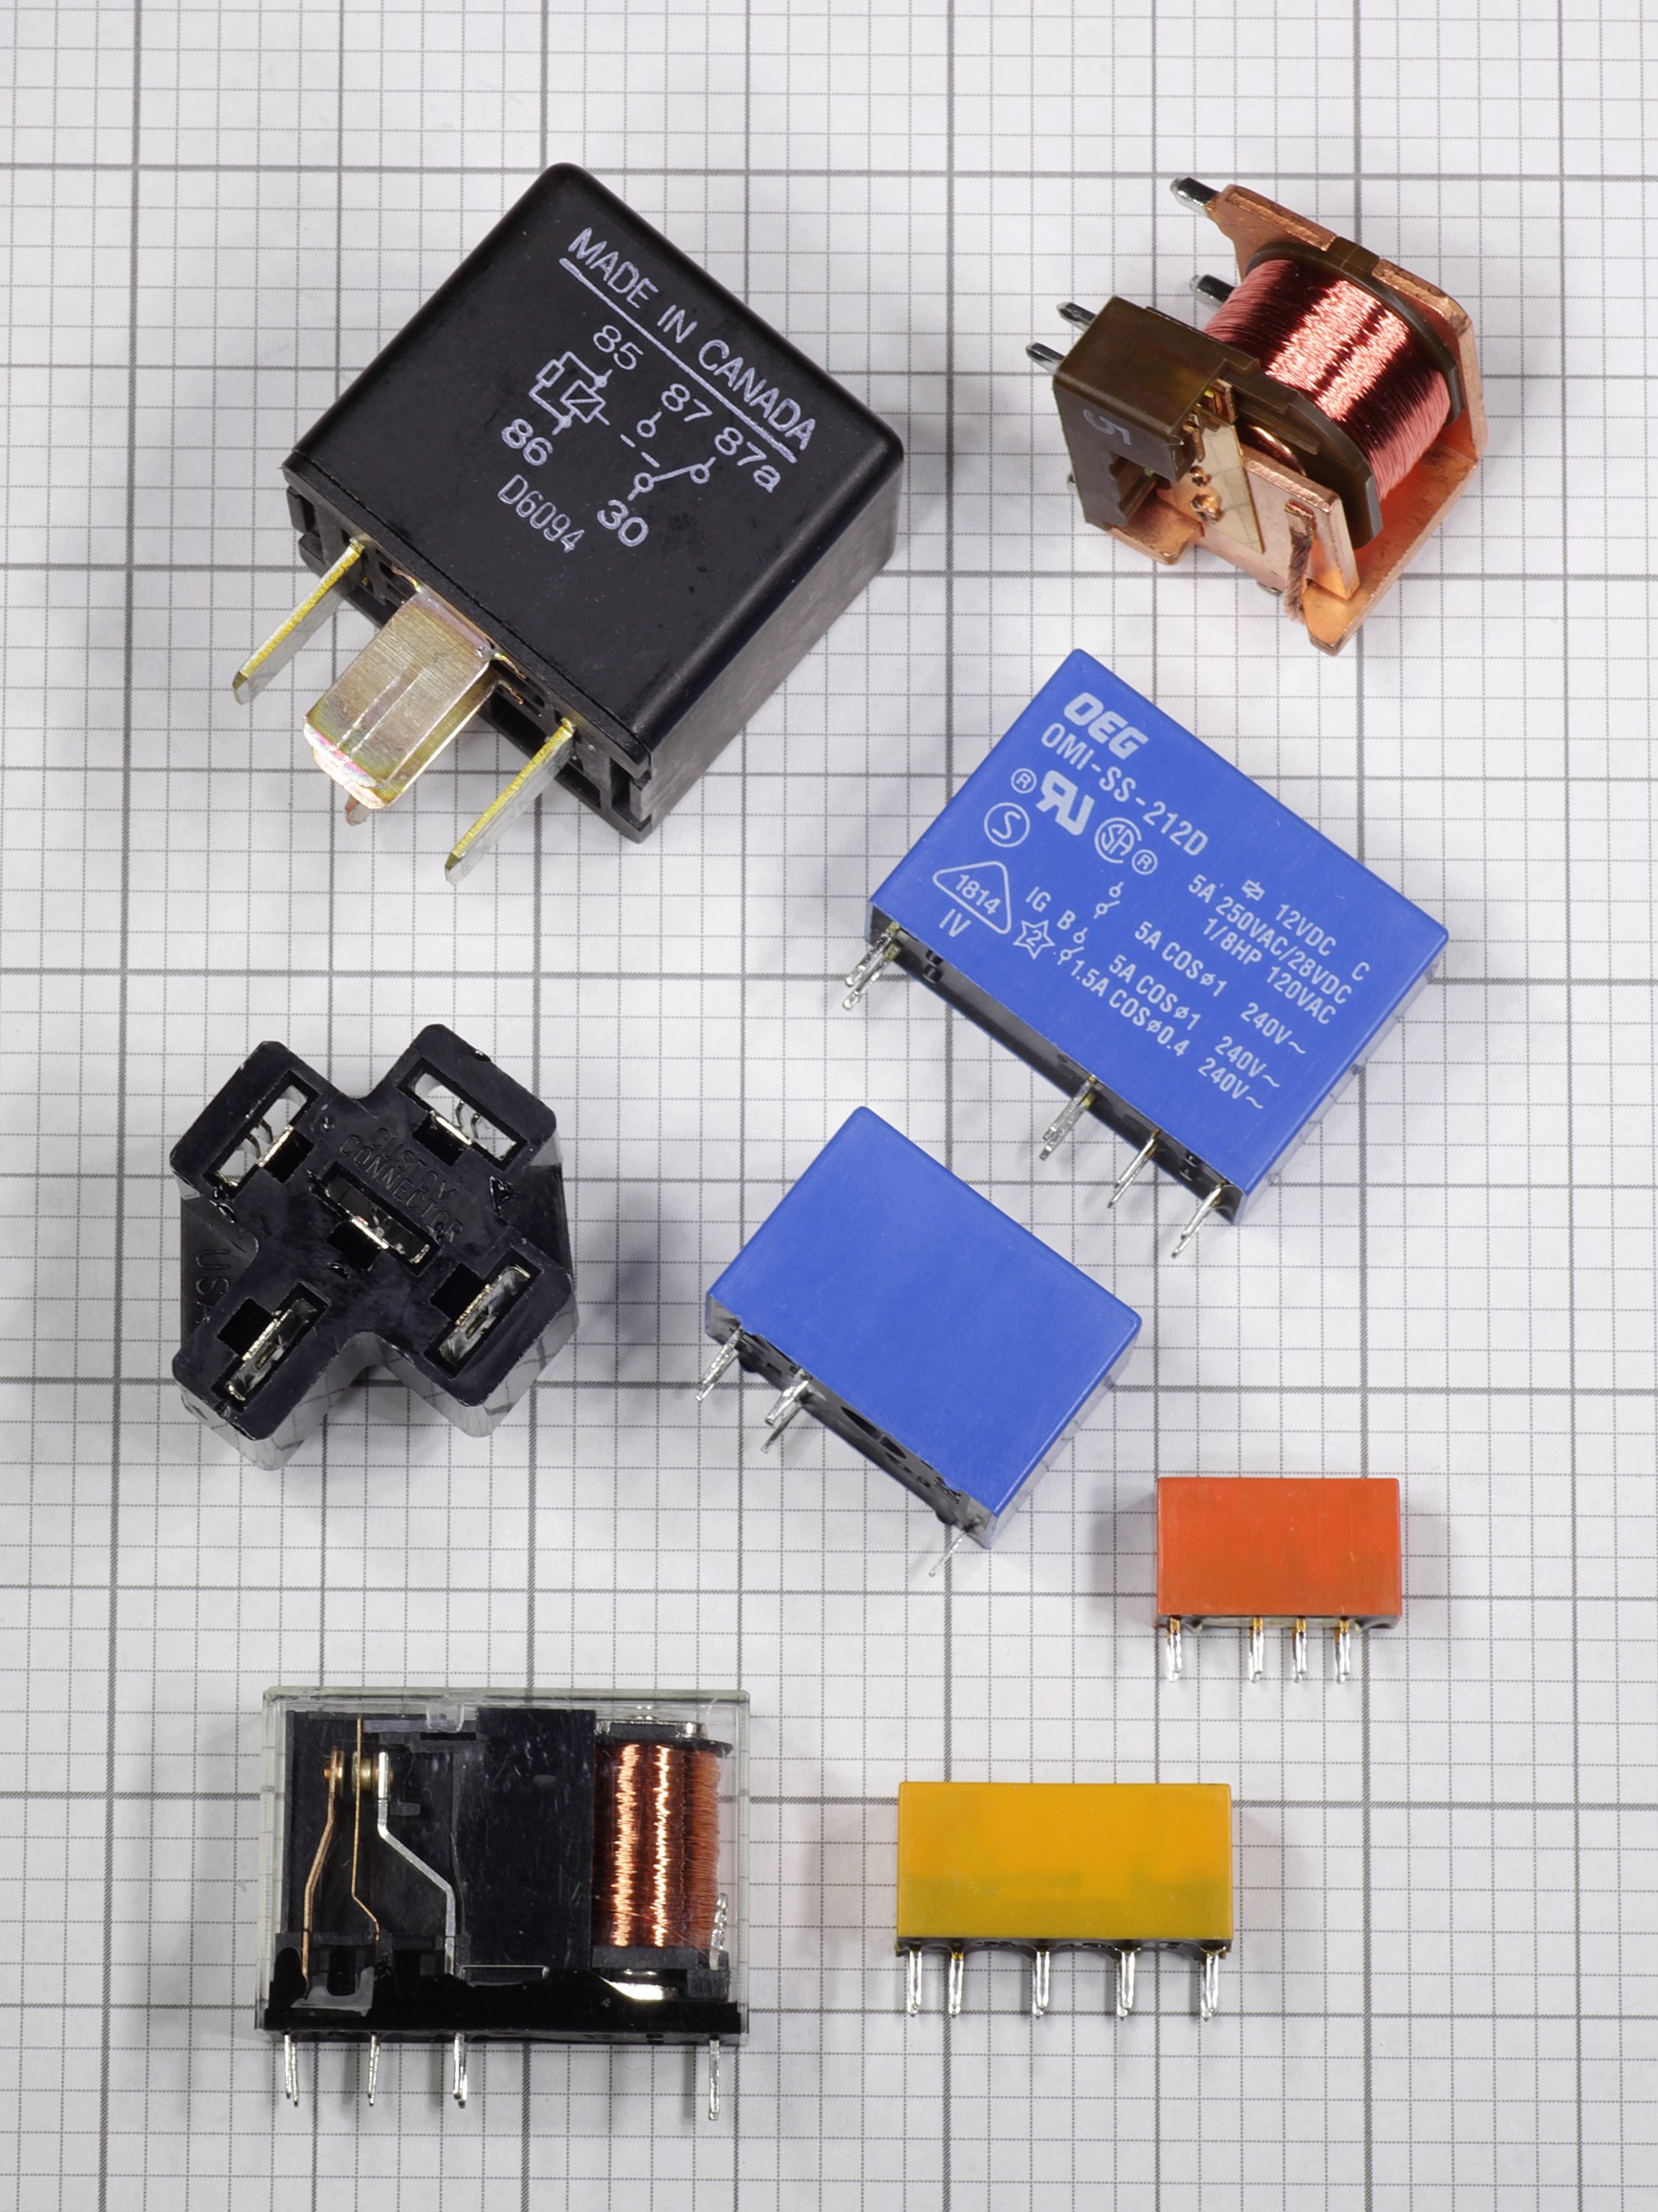 Component Of The Month Relays Make Current Through Relay Coil